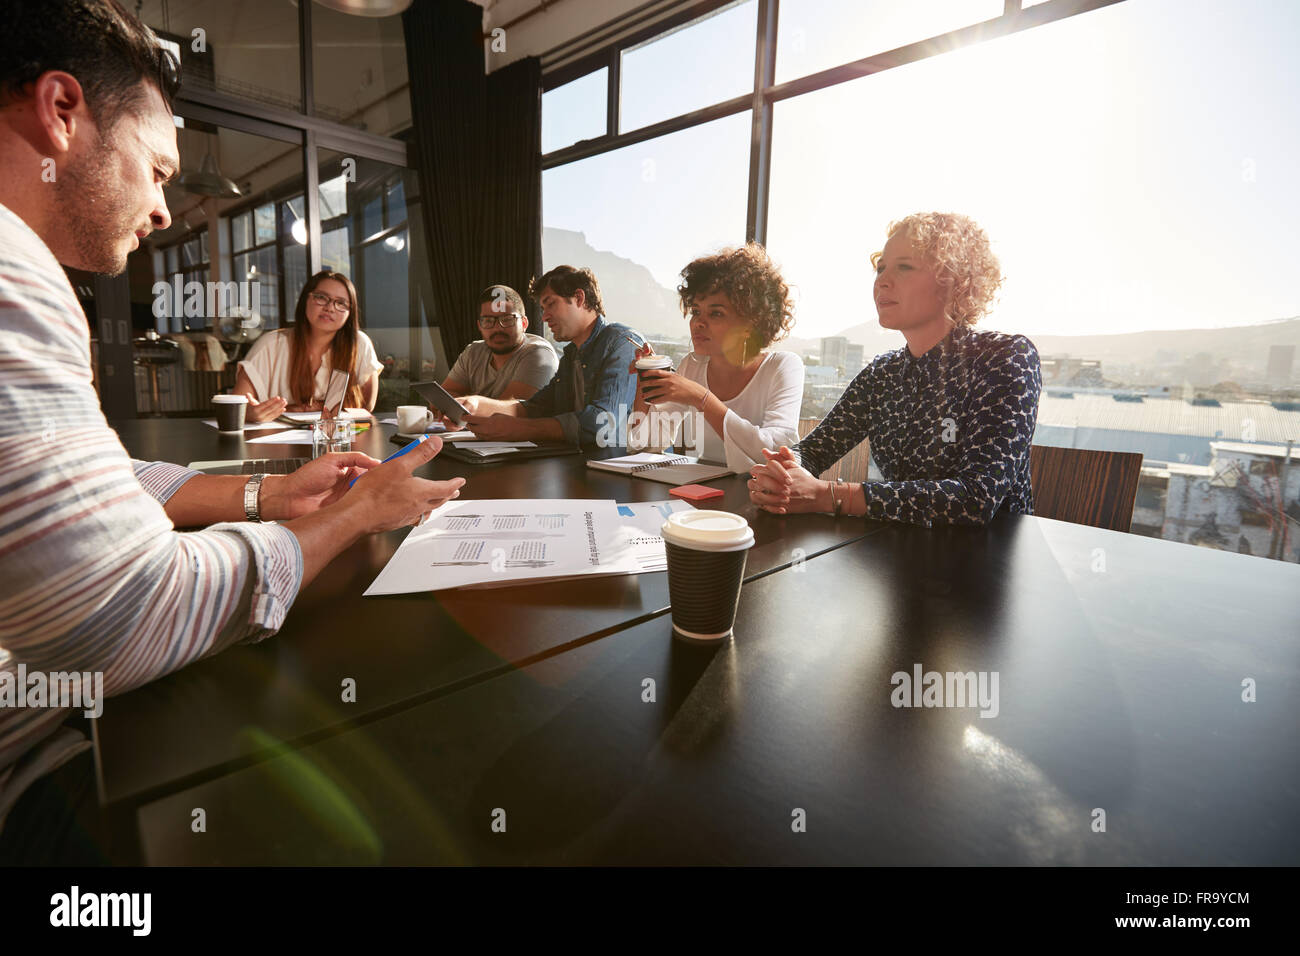 Portrait of creative team sitting around a table discussing new project plans. Mixed race people meeting in office. - Stock Image